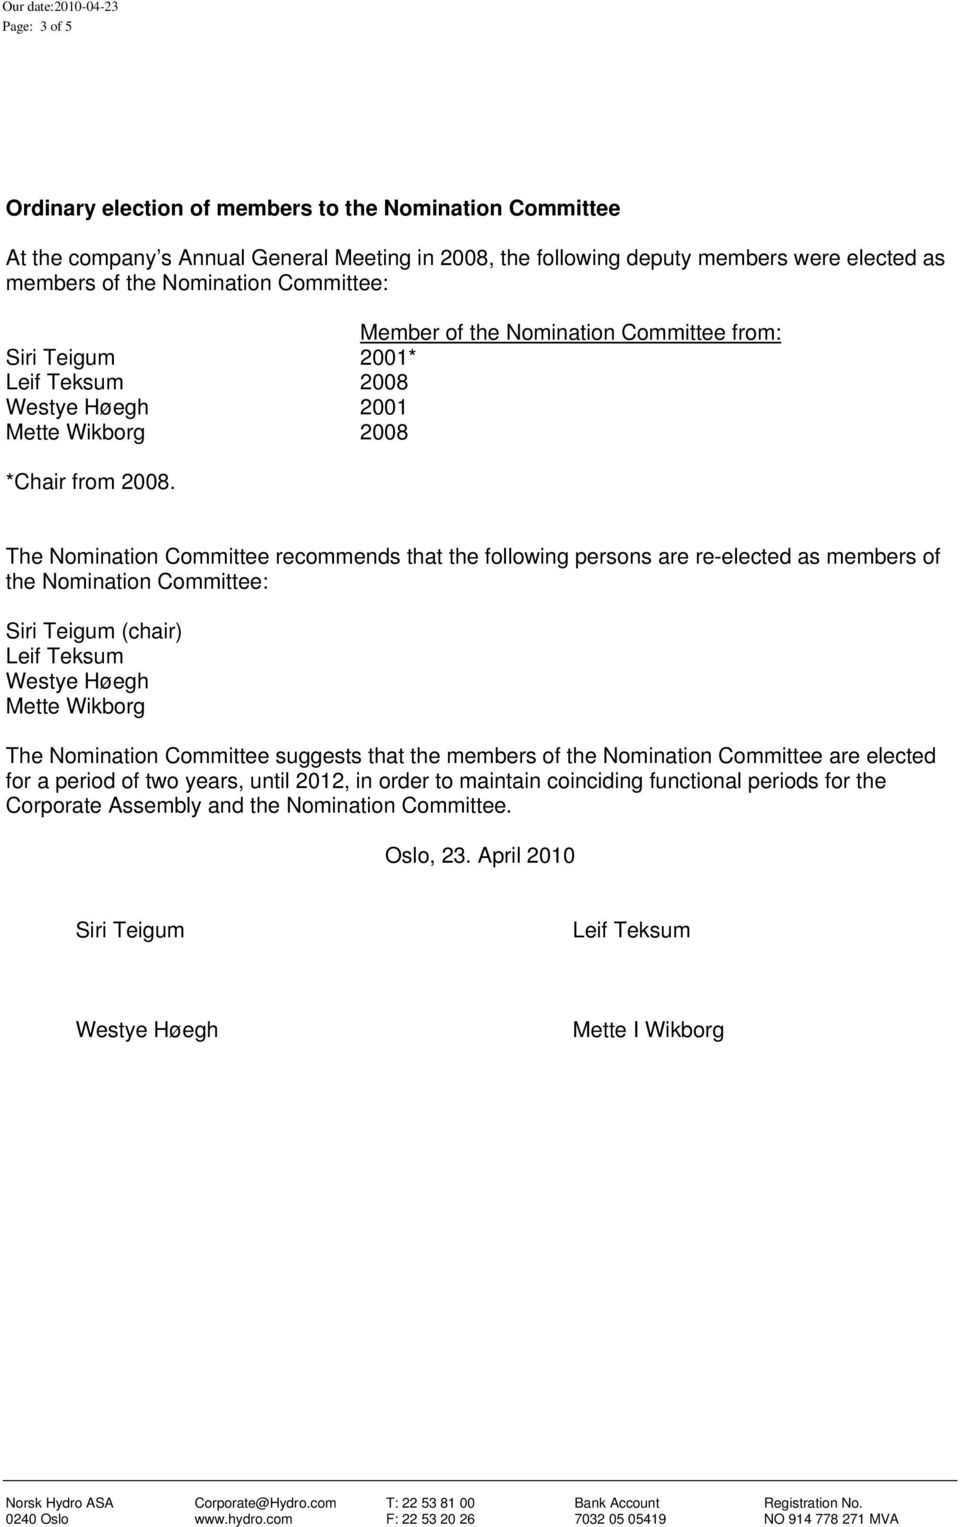 The Nomination Committee recommends that the following persons are re-elected as members of the Nomination Committee: Siri Teigum (chair) Mette Wikborg The Nomination Committee suggests